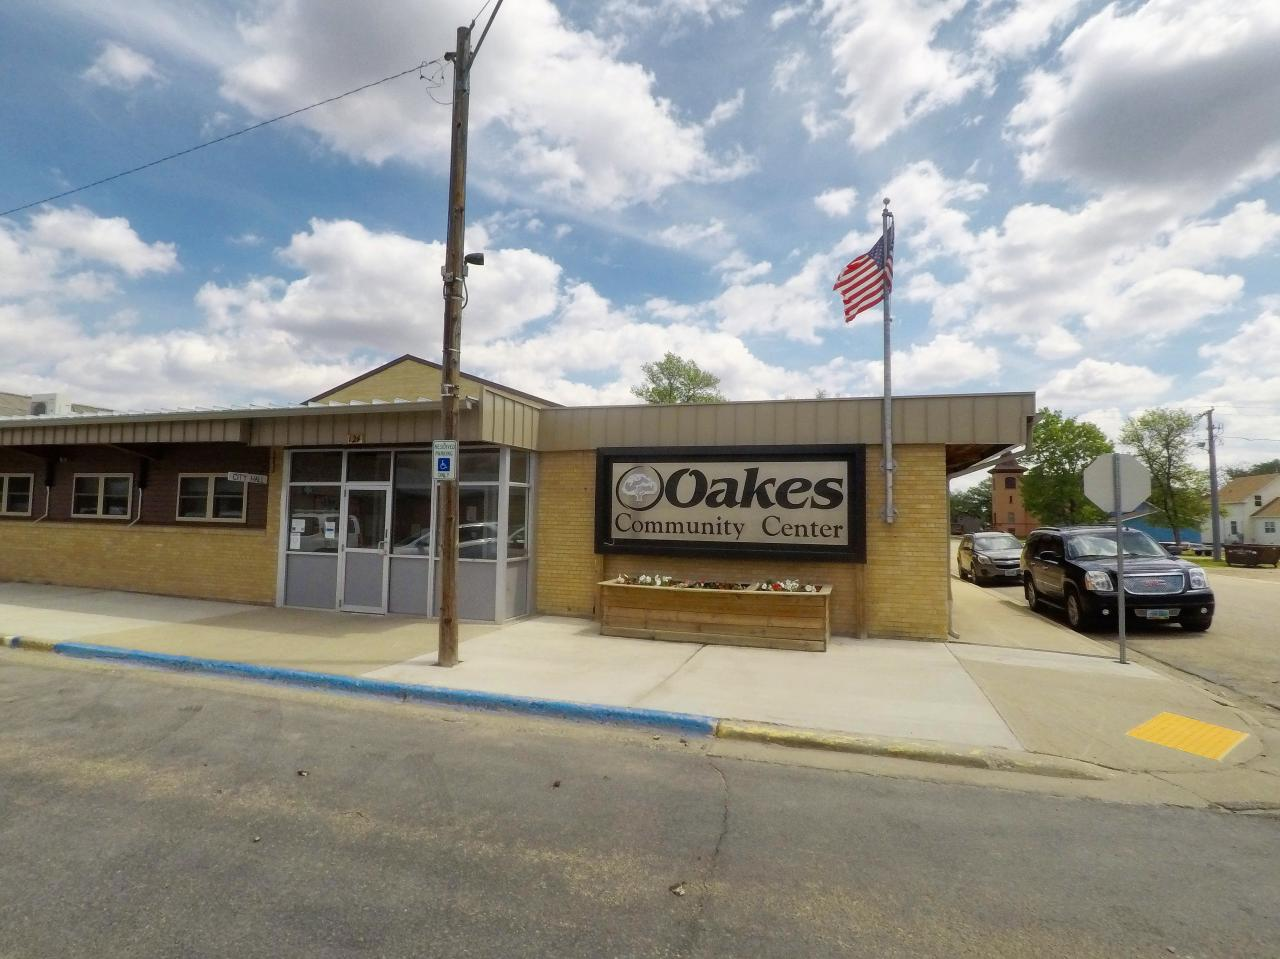 Oakes Community Center